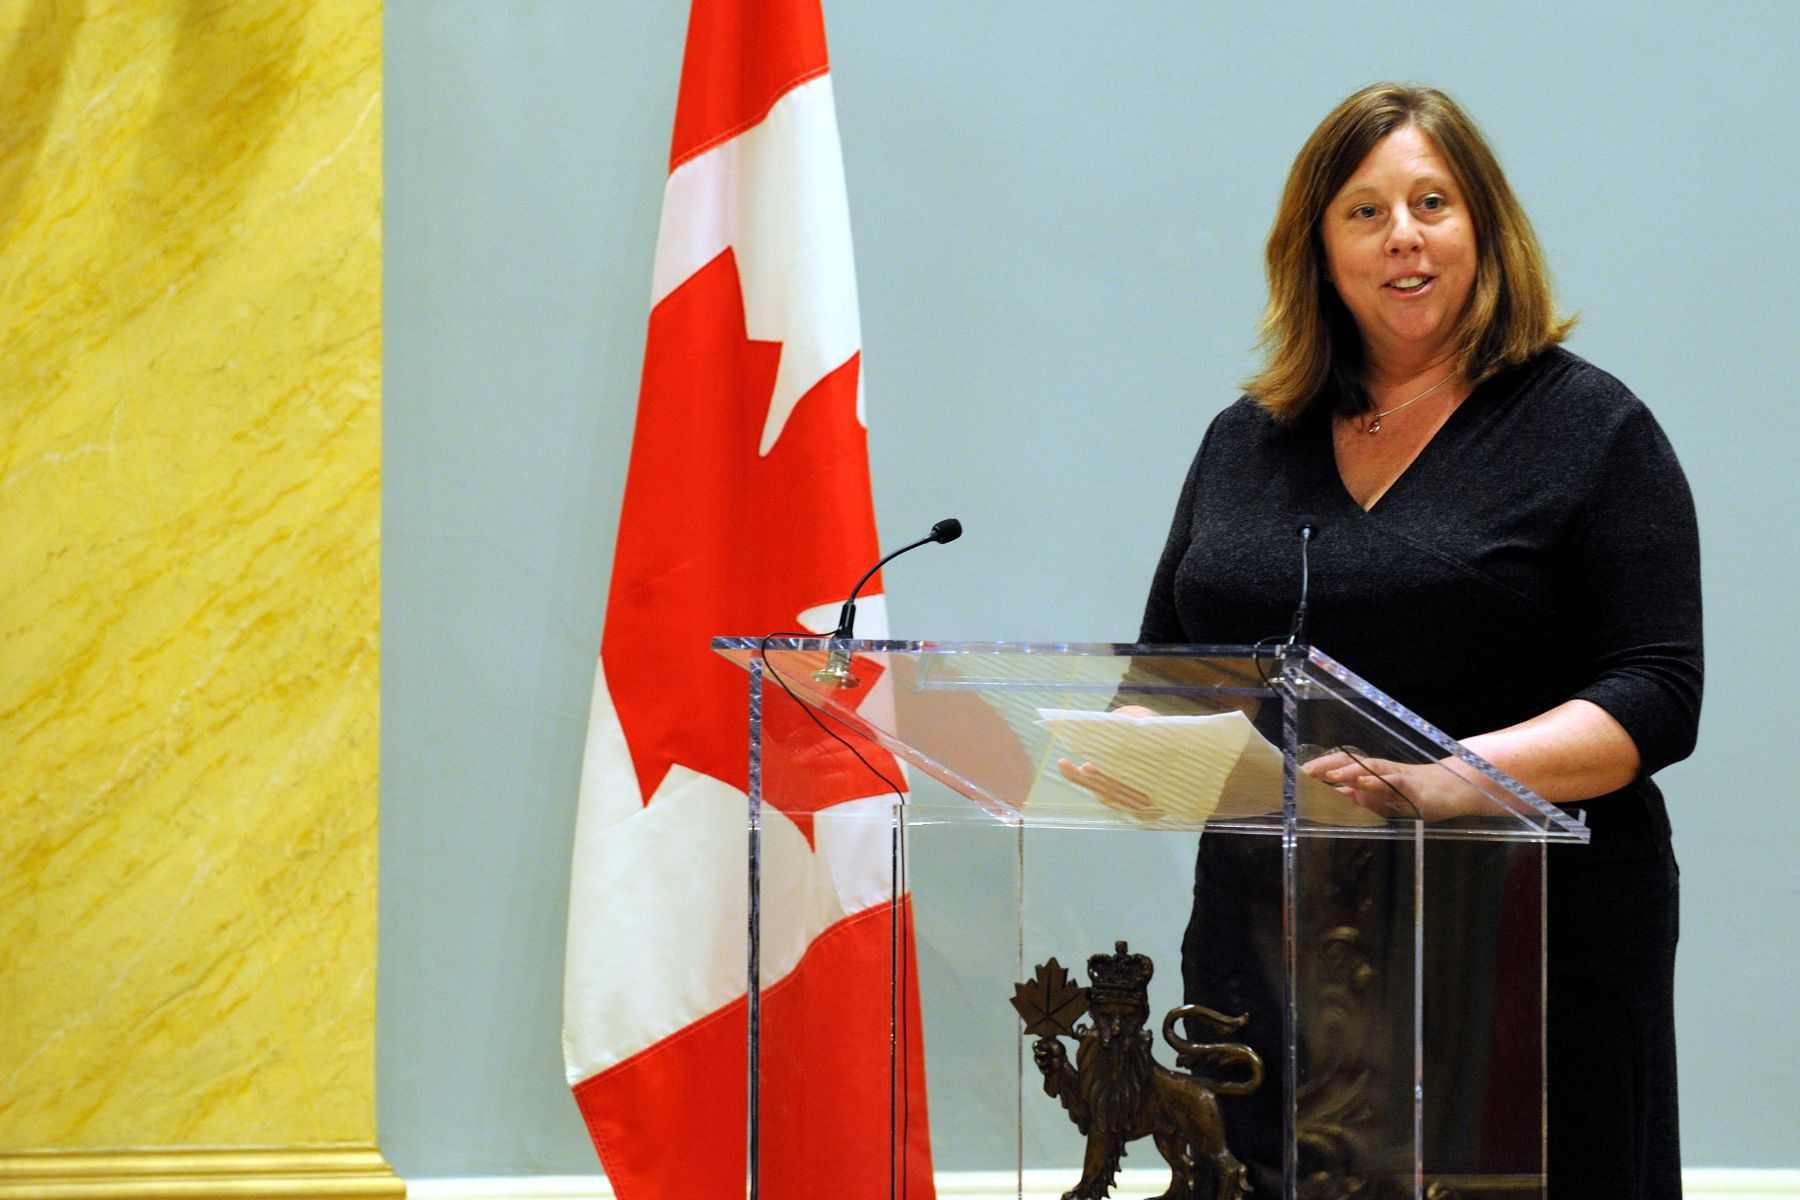 CEO and President of Canada's National History Society Mrs. Deborah Morrison delivered a speech during which she congratulated this year's winners.